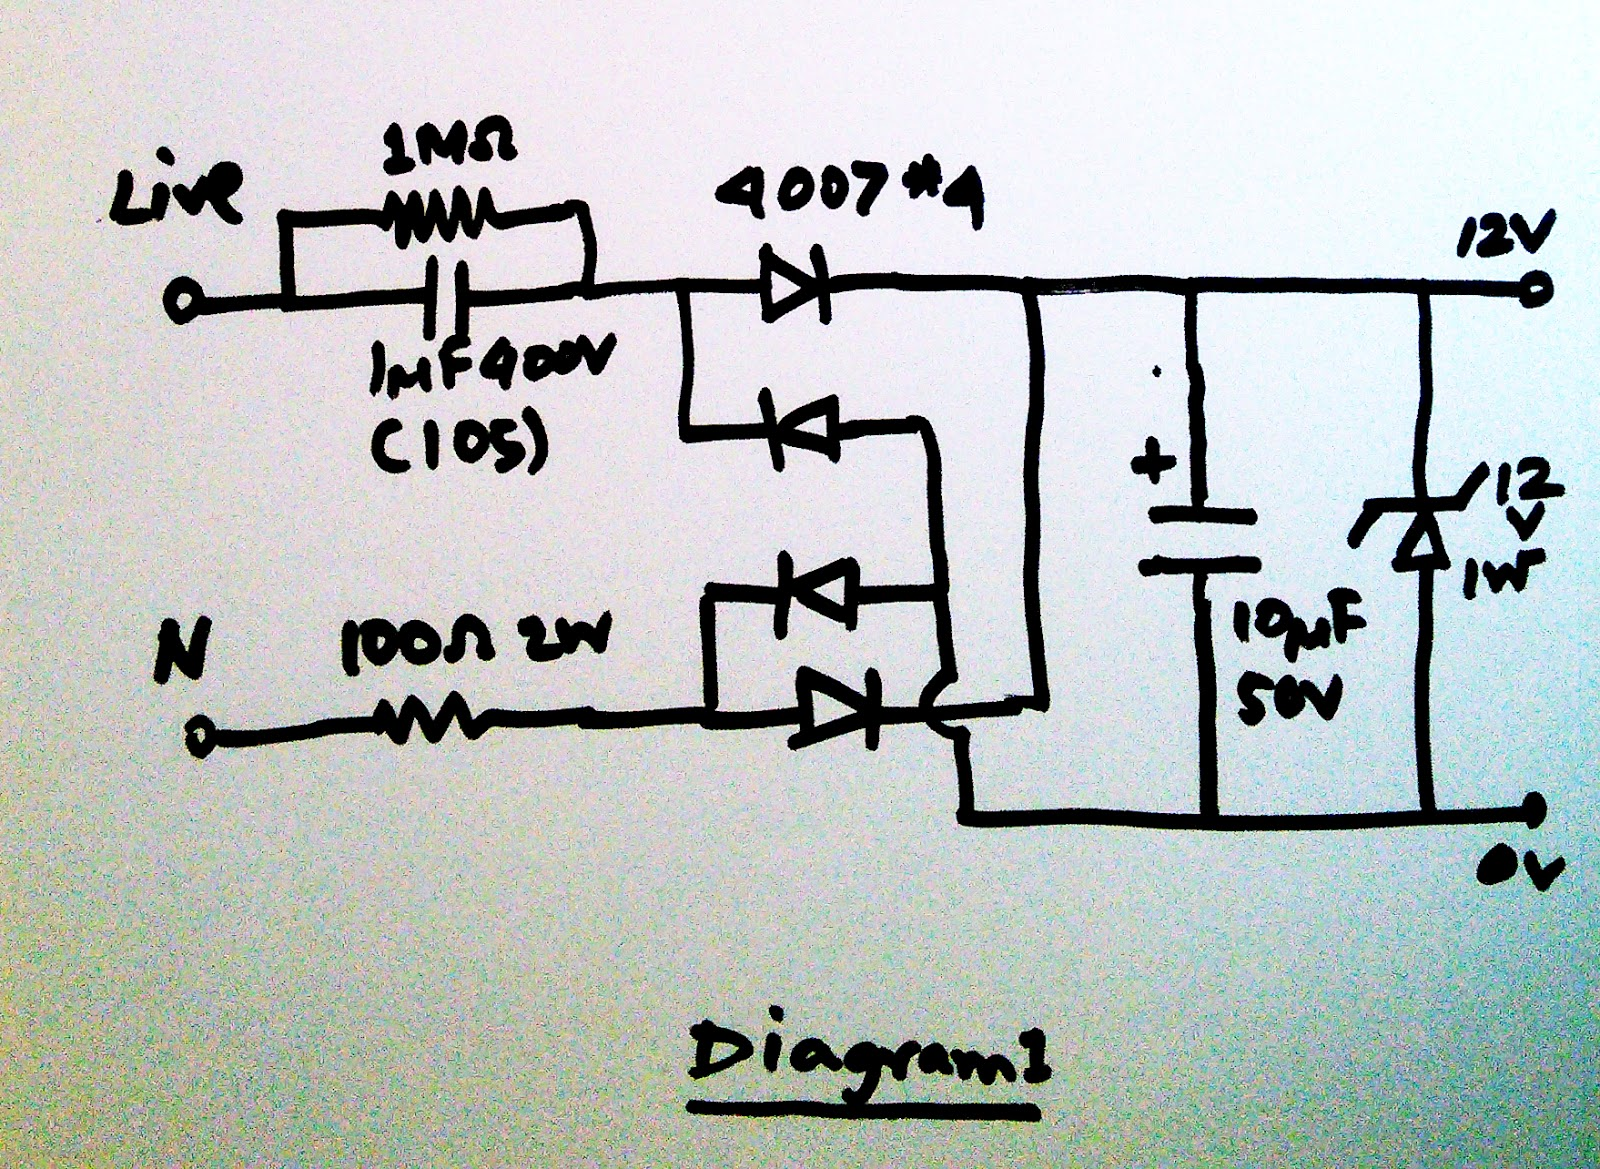 24v Transformerless Power Supply Circuit Diagram Trusted Wiring 24vdc 120v Ac And 230v Electrical Scavengers Blog Unit Dc